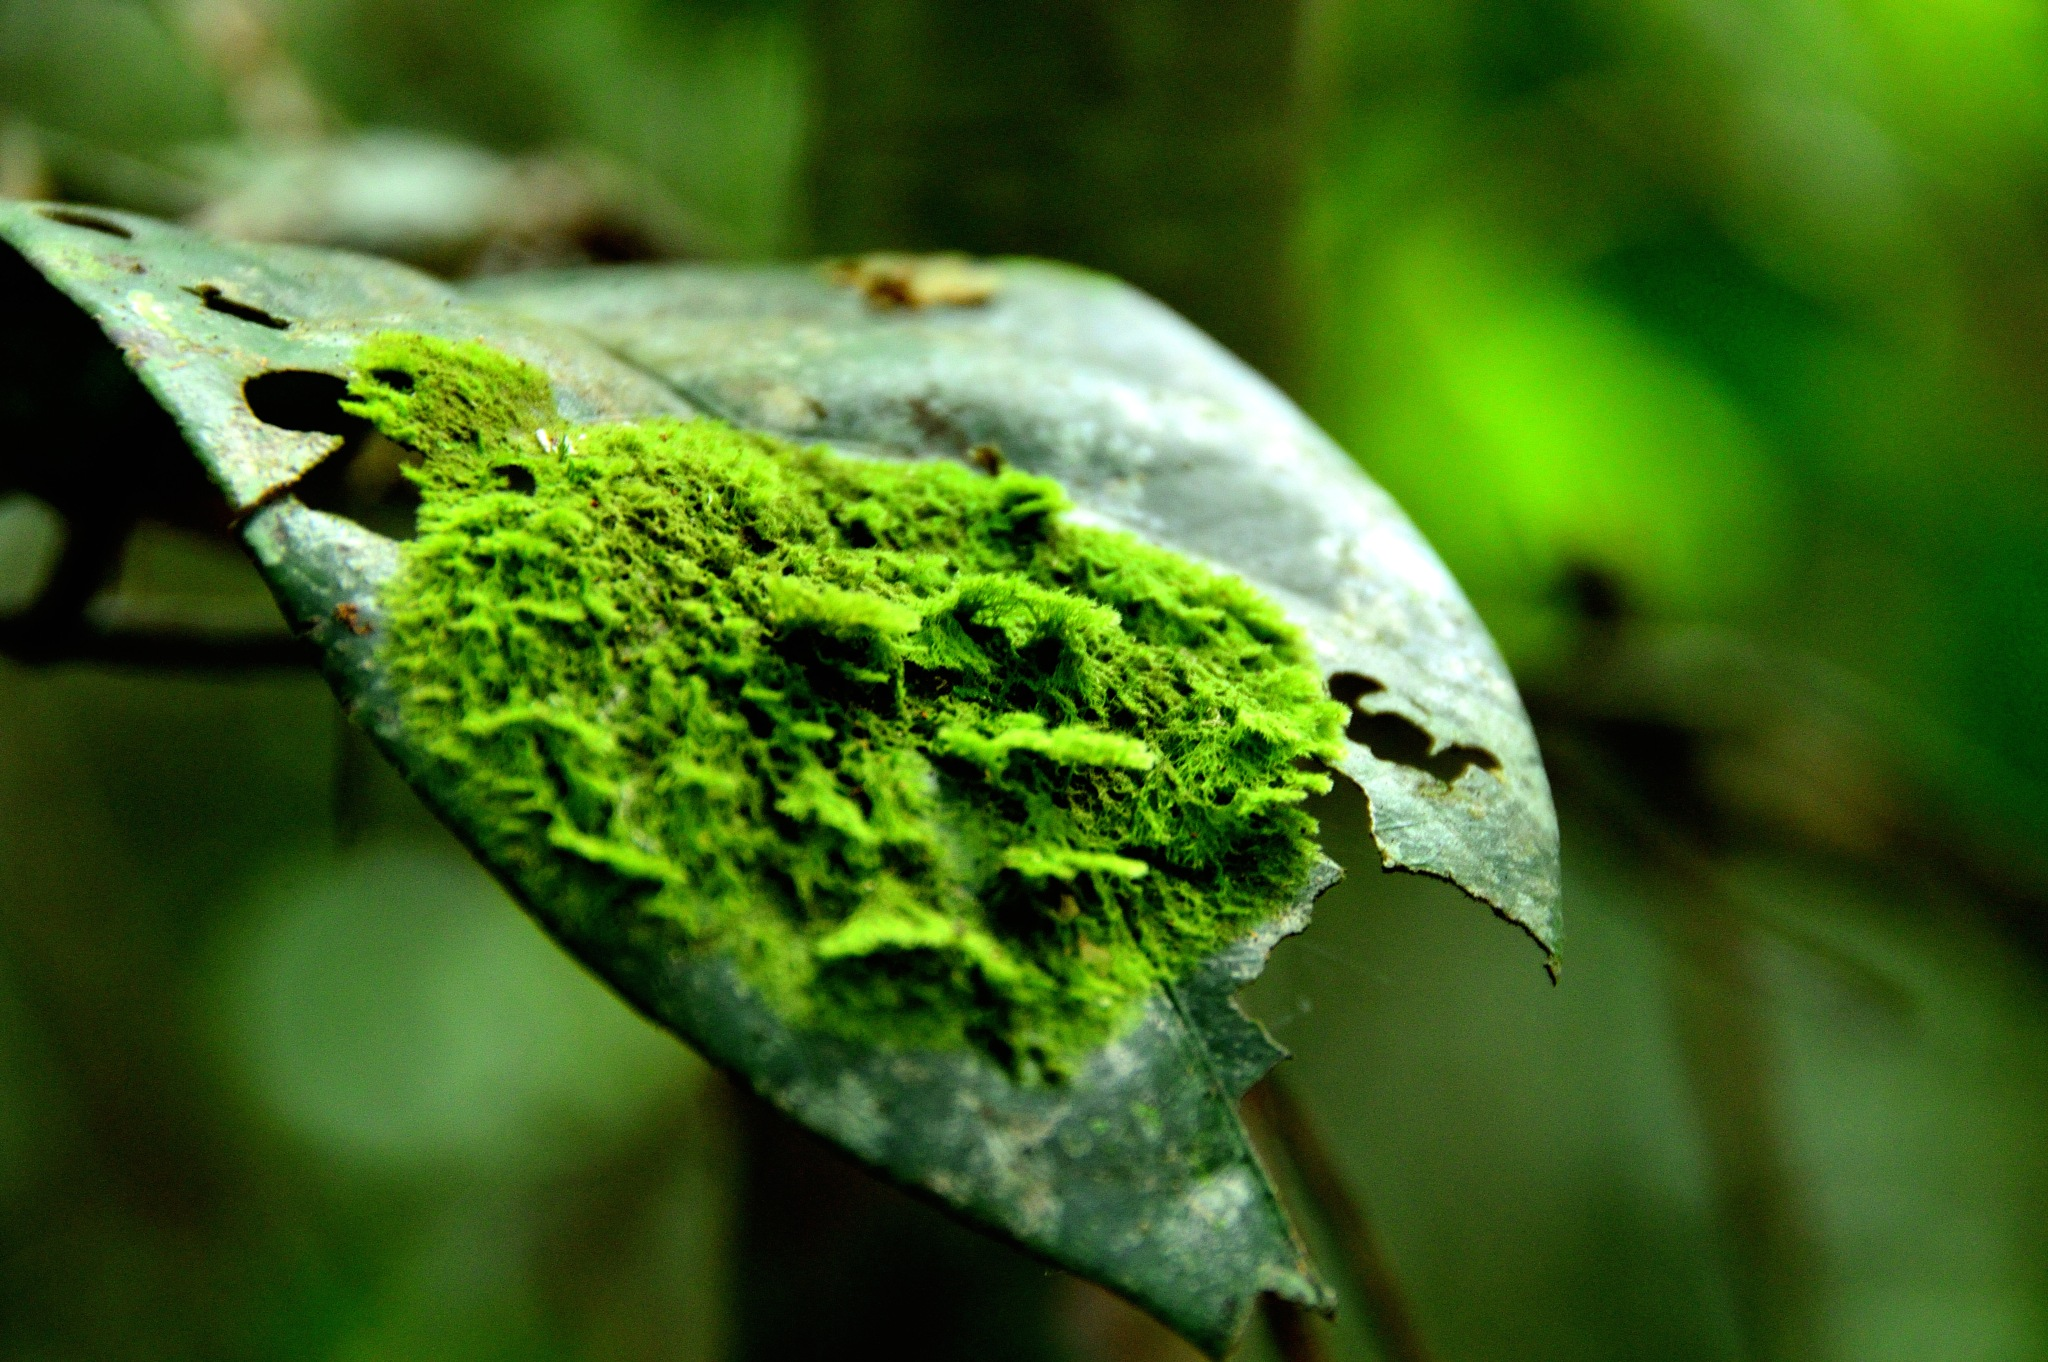 Moss by CaballerodeGracia